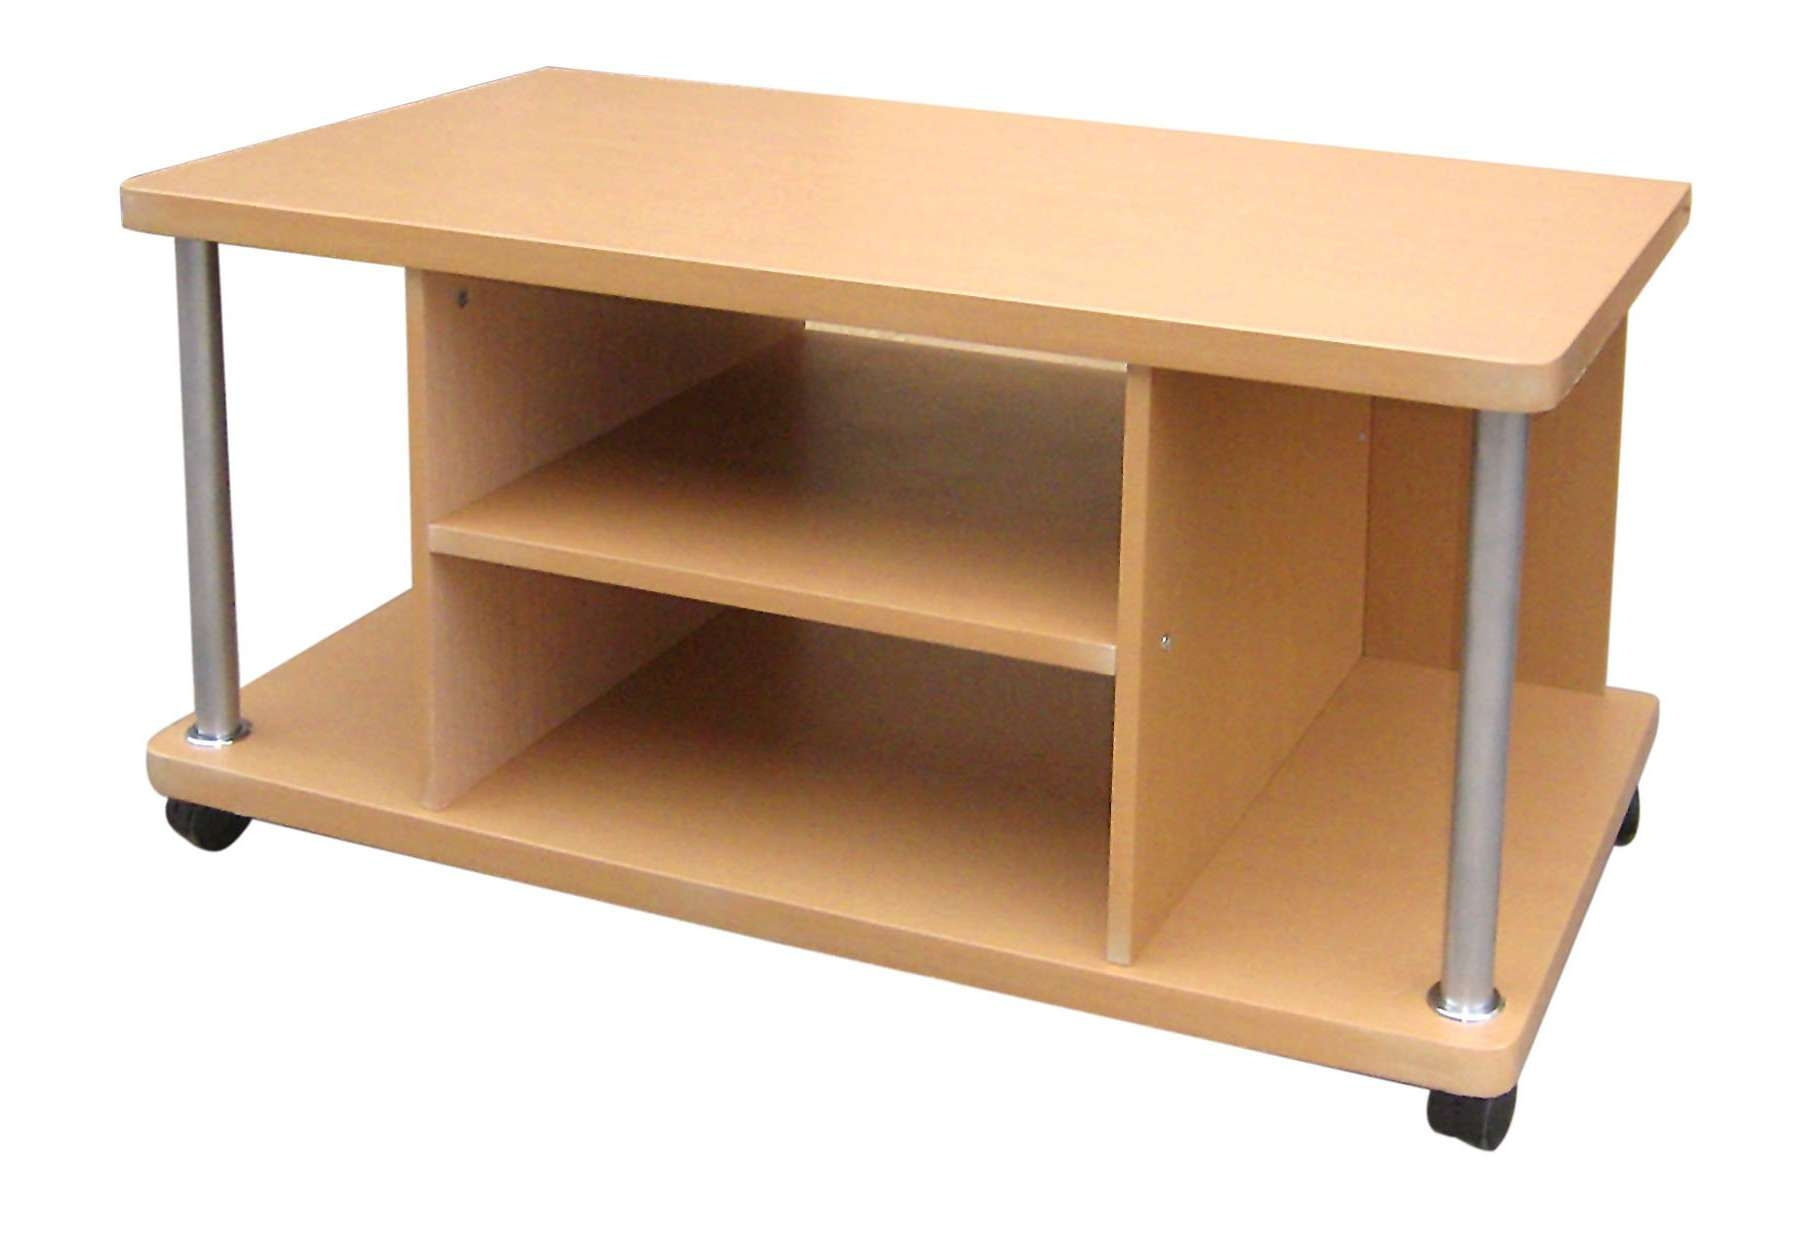 Wooden Tv Stands Product ~ Best collection of wooden tv stands with wheels